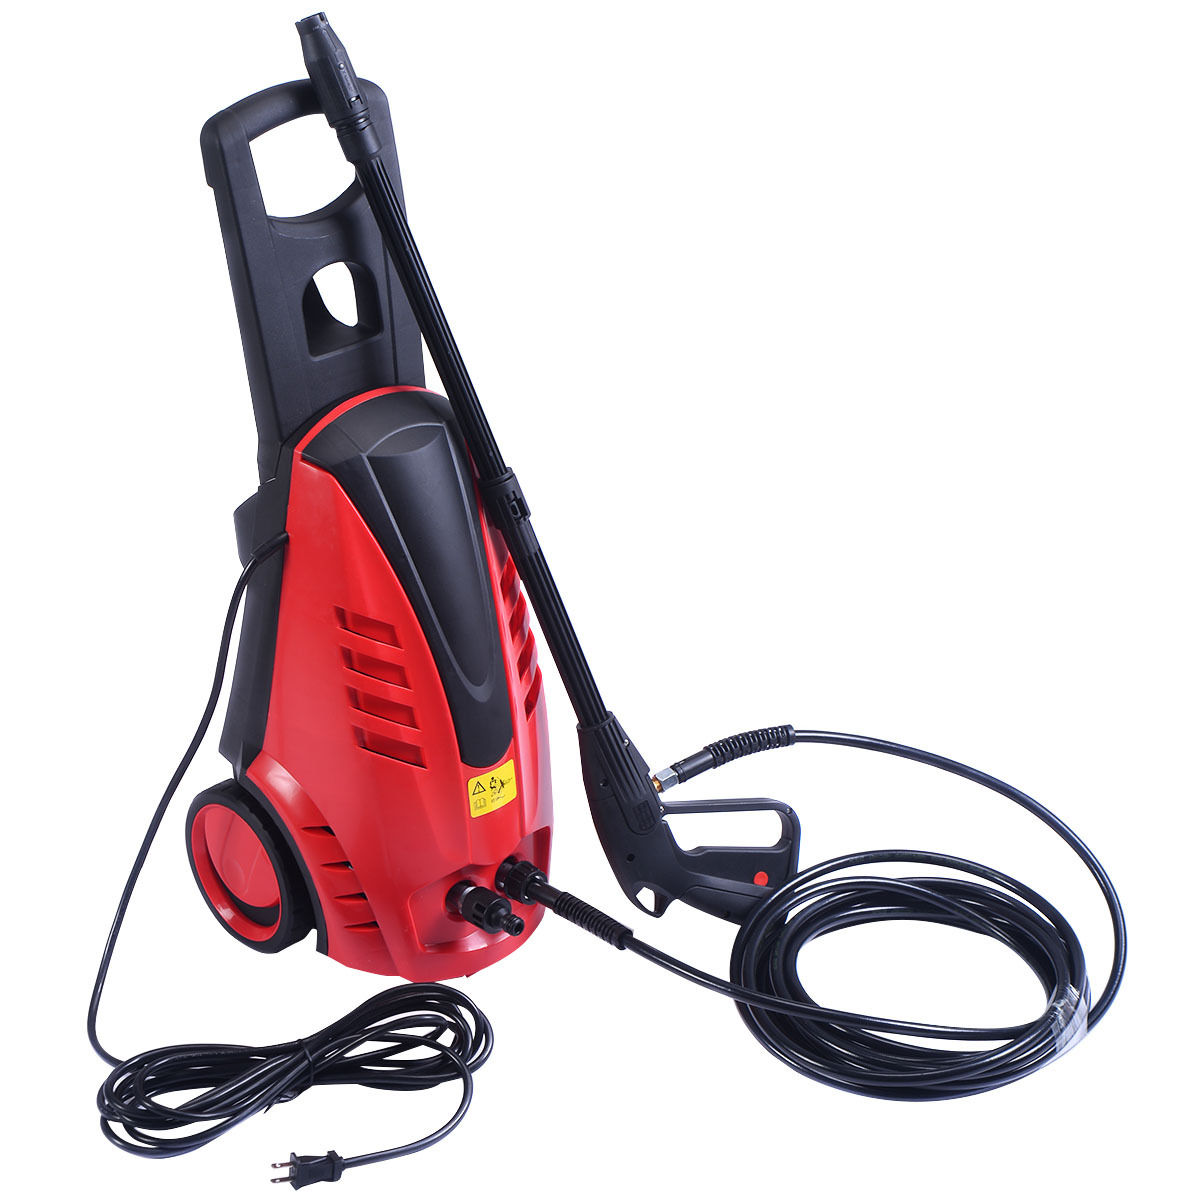 GHP 2030PSI 2000W 1.76GPM Red ABS Body Aluminum Alloy Pump High Pressure Washer